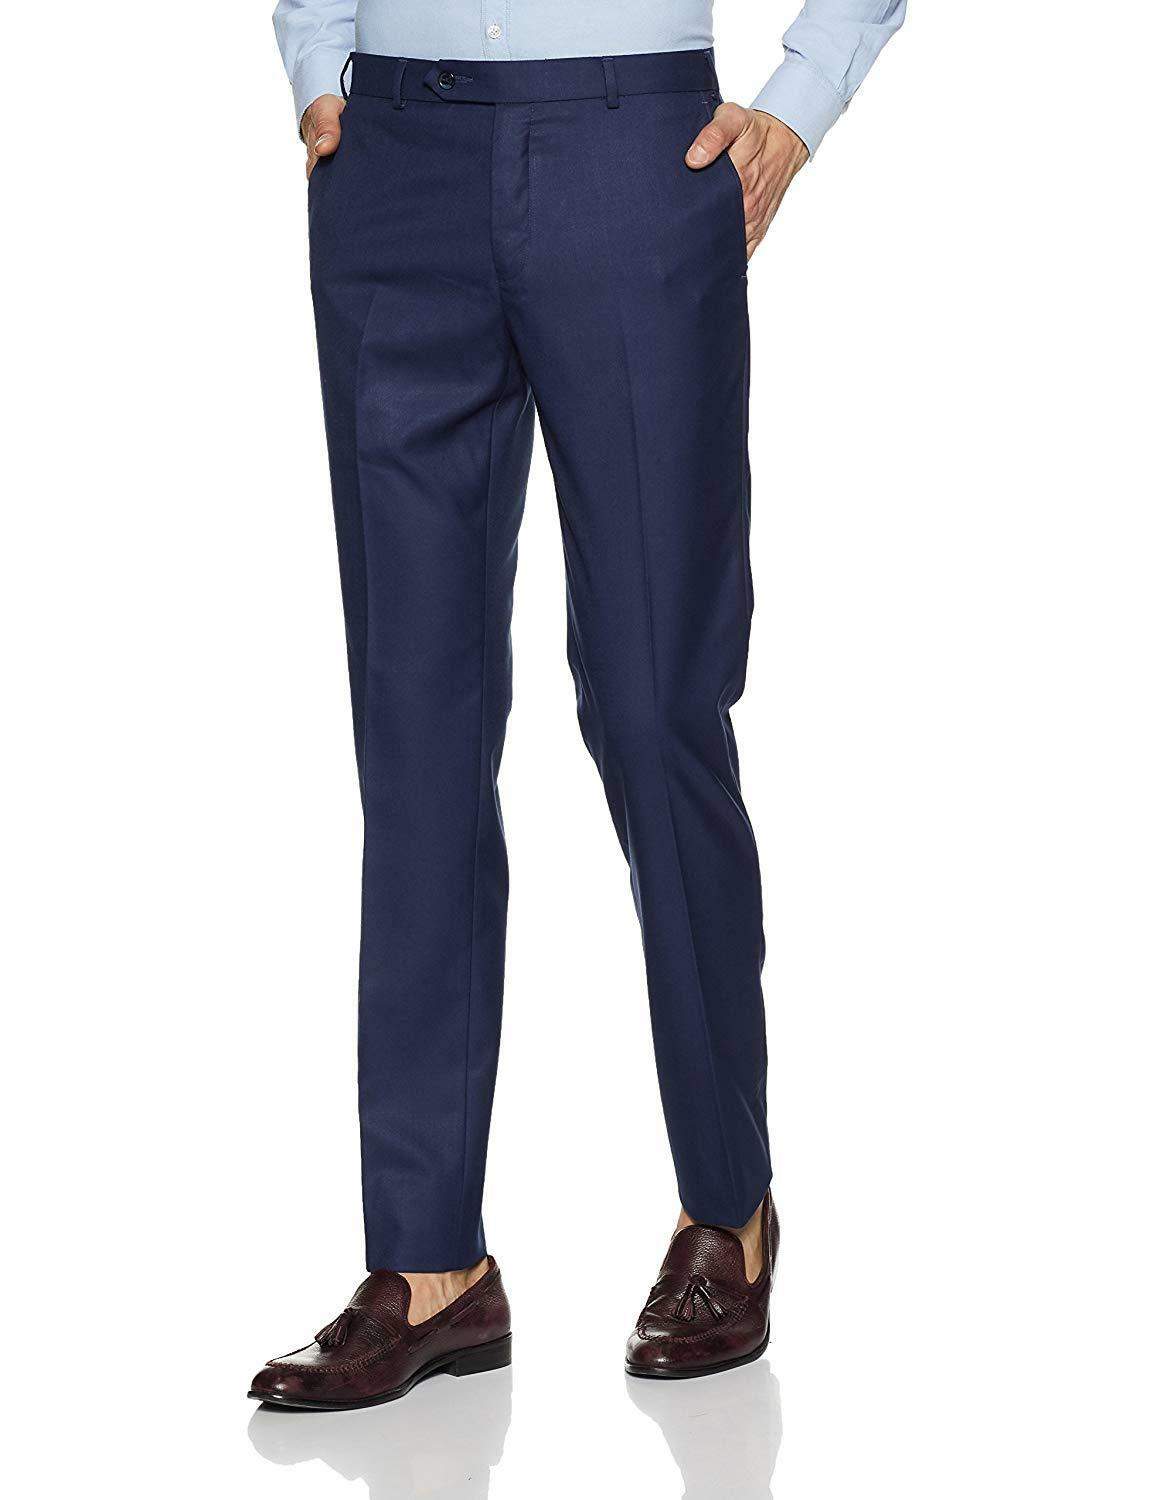 Men'S Pleat-Front Pants Suit Formal Trousers Work Mens Business Straight